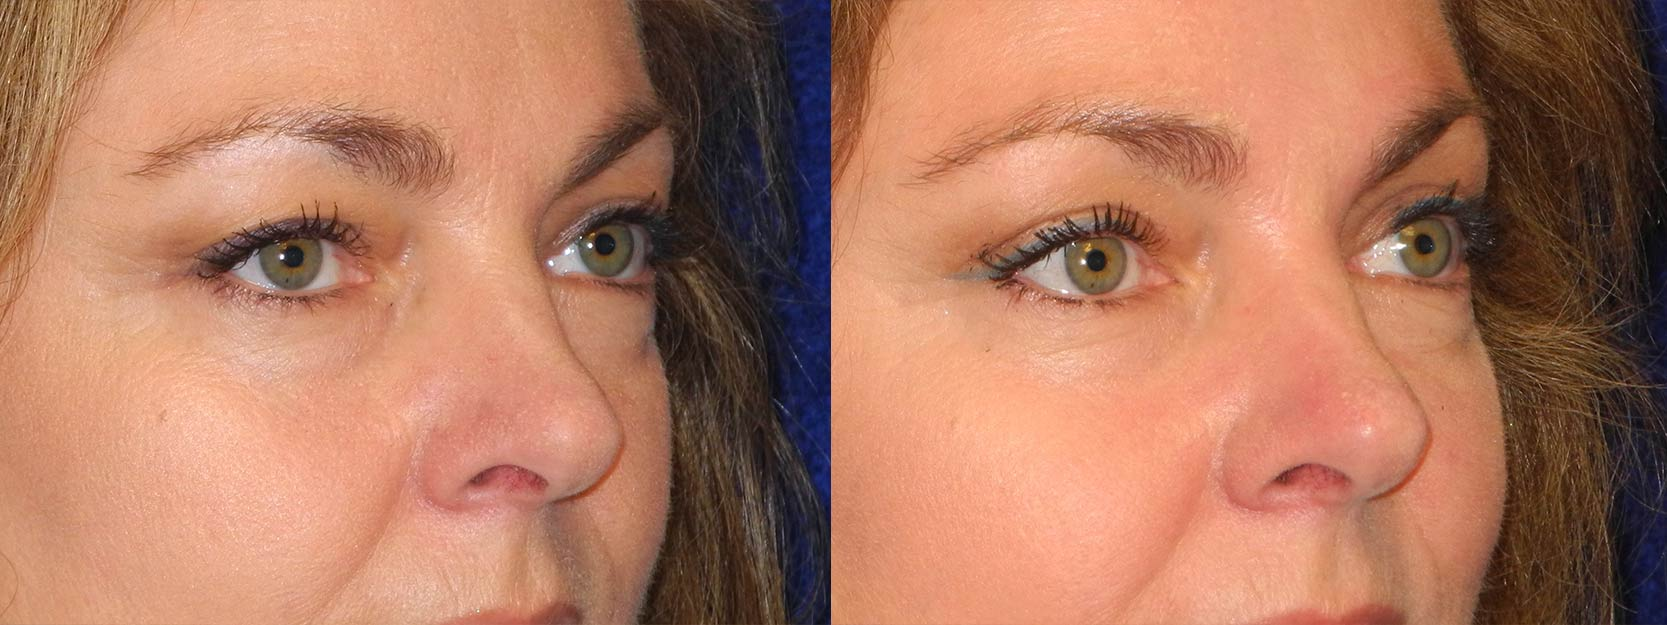 Right 3/4 View - Upper Eyelid Surgery